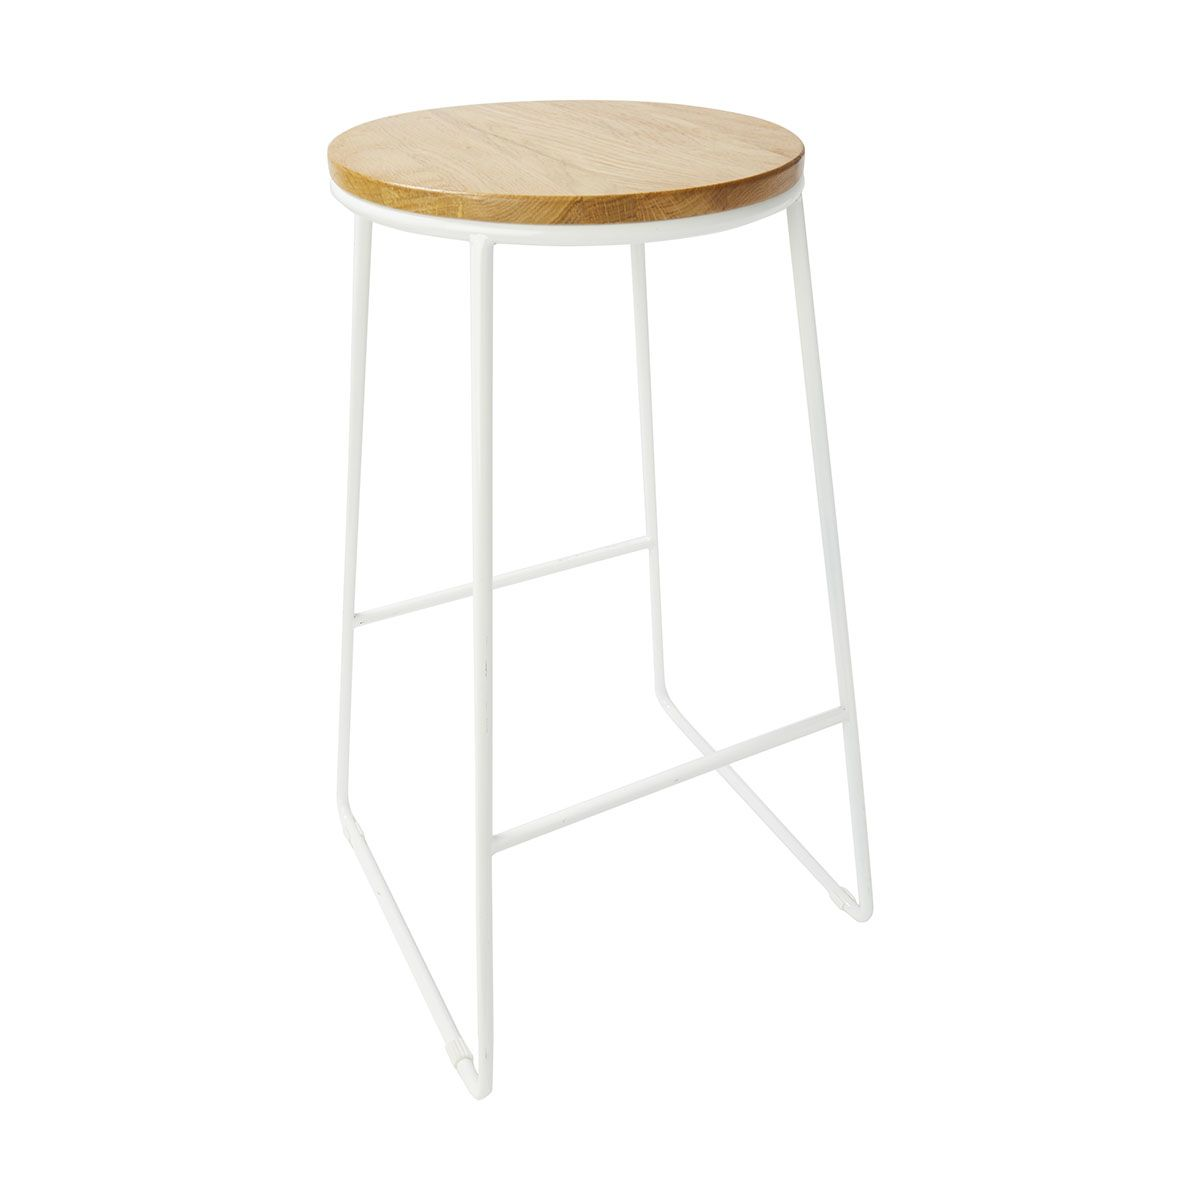 Excellent White Industrial Stool In 2019 Bar Stools Industrial Creativecarmelina Interior Chair Design Creativecarmelinacom